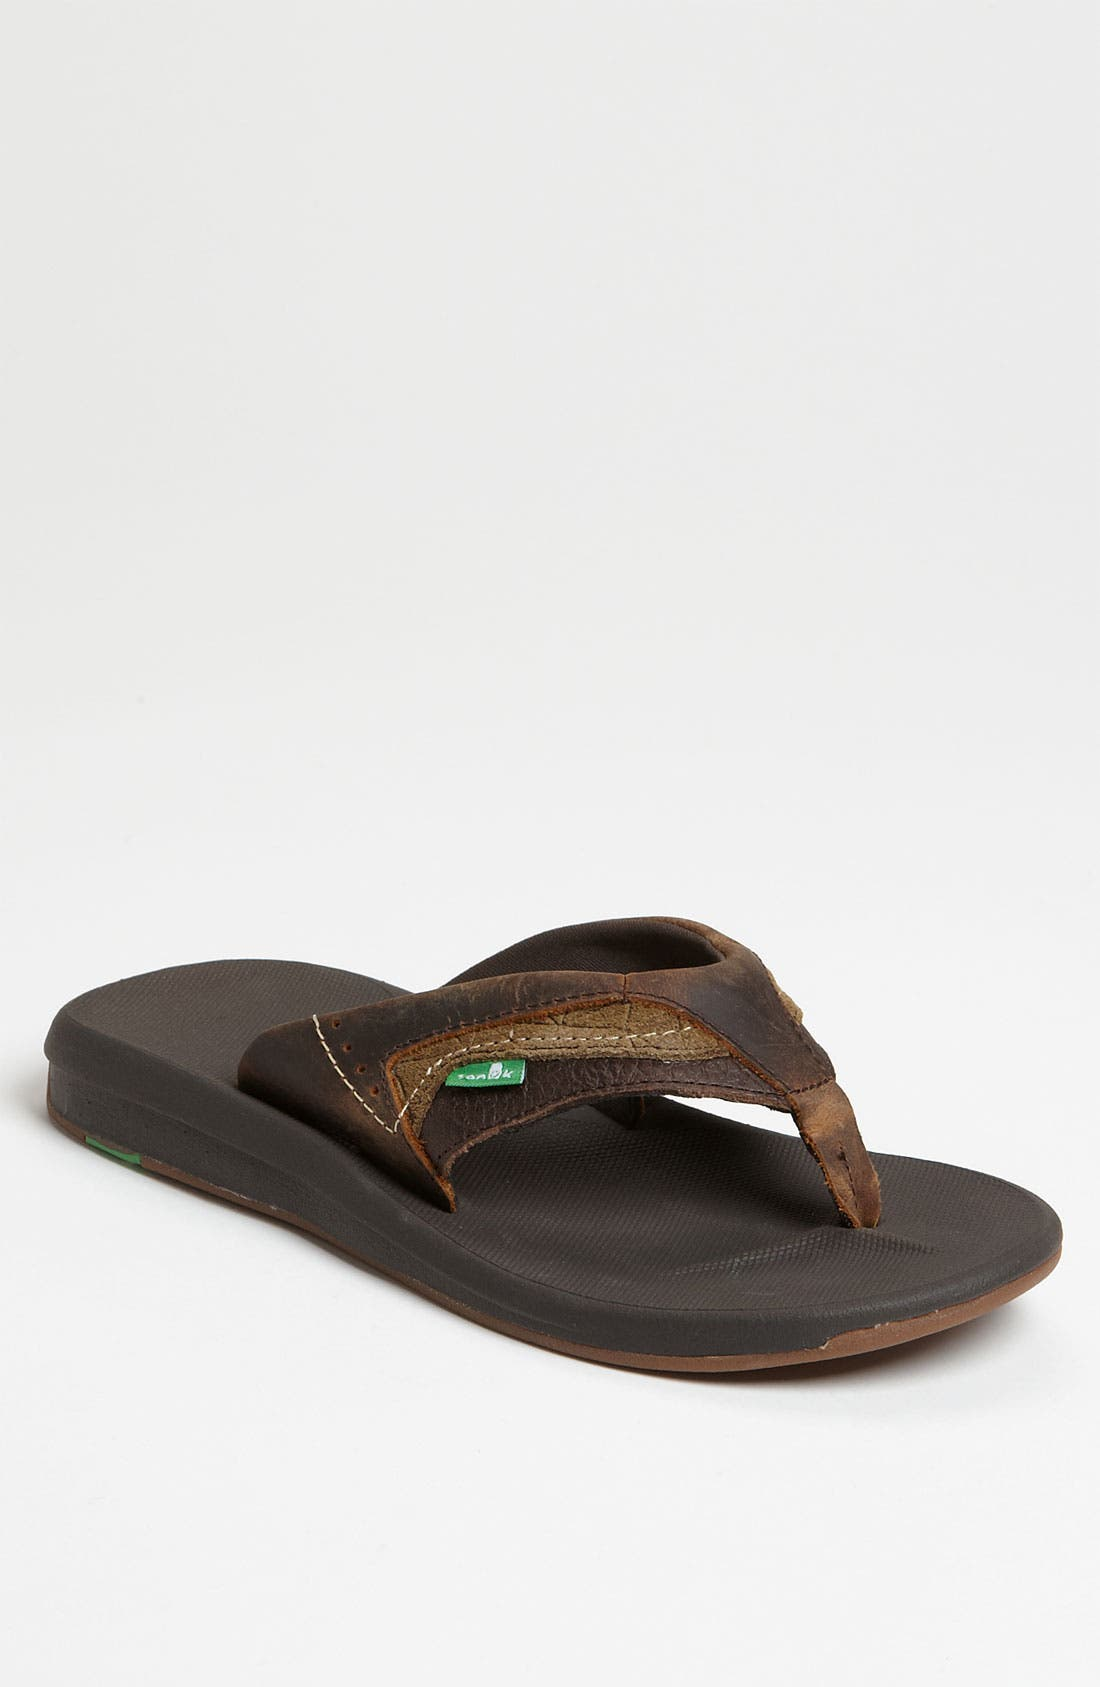 Alternate Image 1 Selected - Sanuk 'Switch' Leather Flip Flop